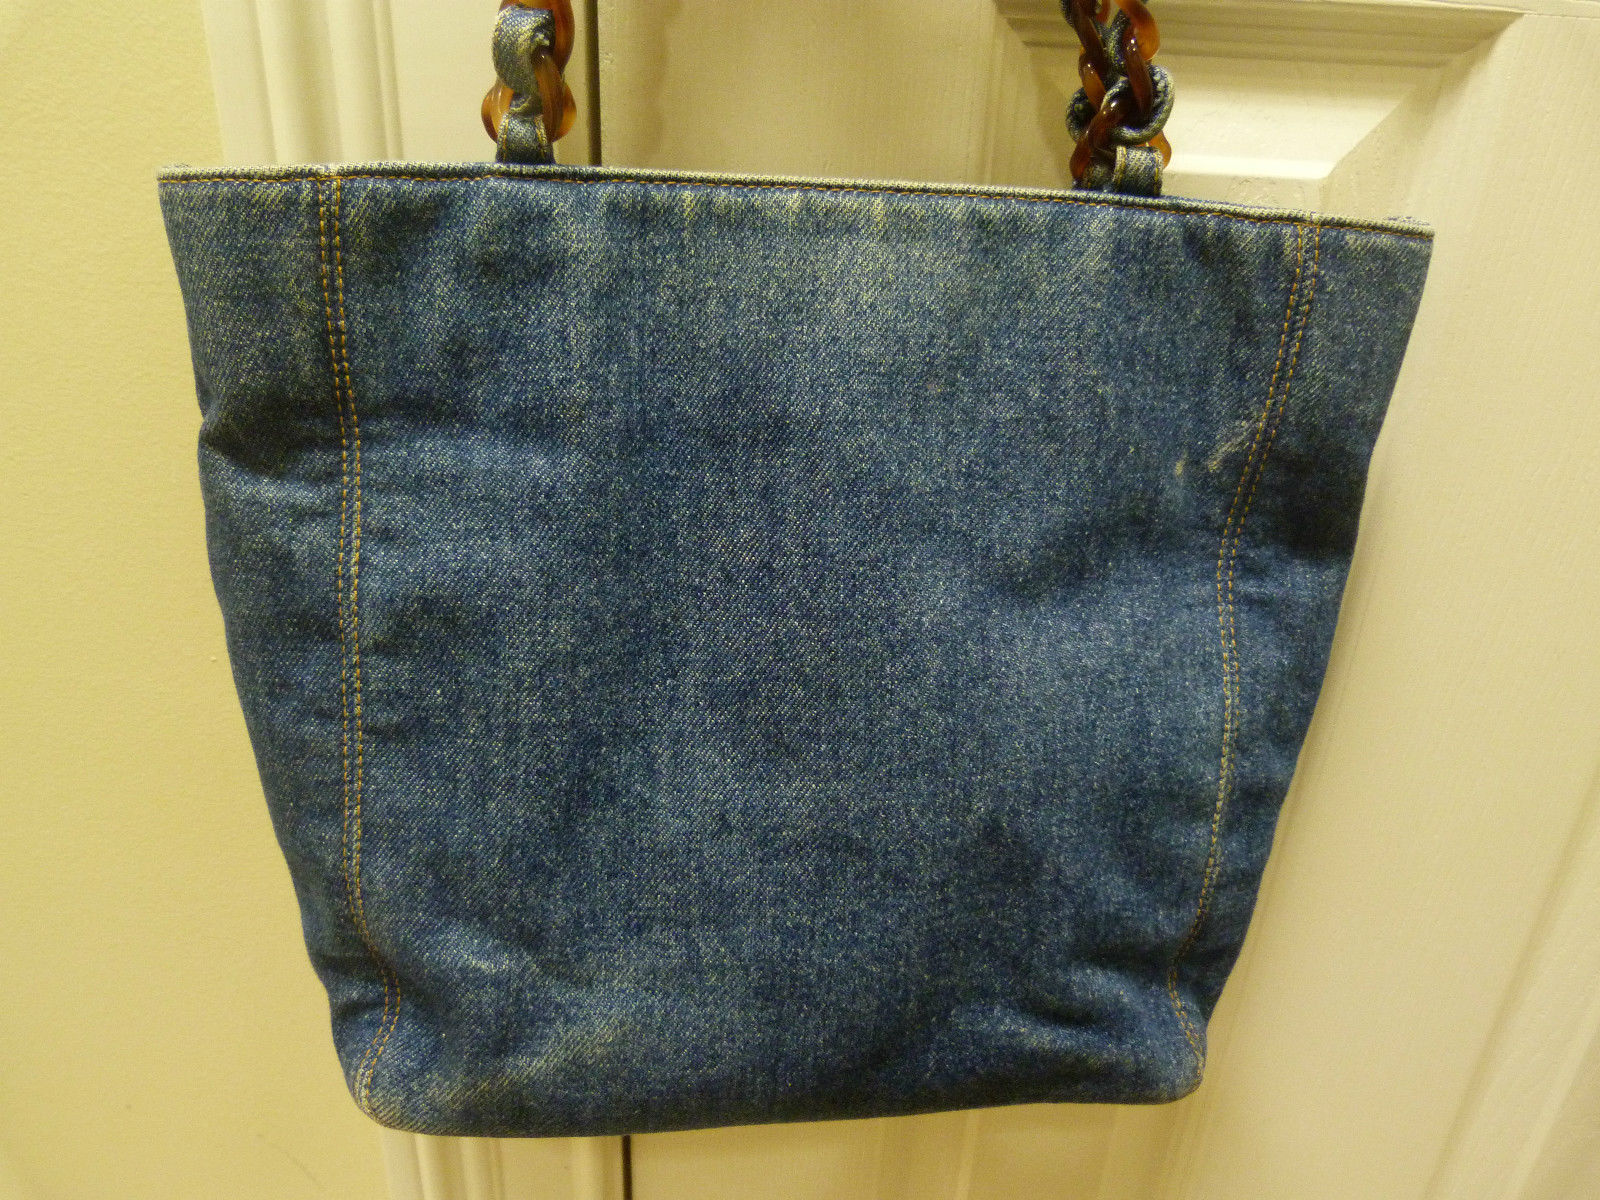 Boca Raton Shopping >> Authentic Chanel Denim Tote Bag Purse with Tortoise Shell Handles